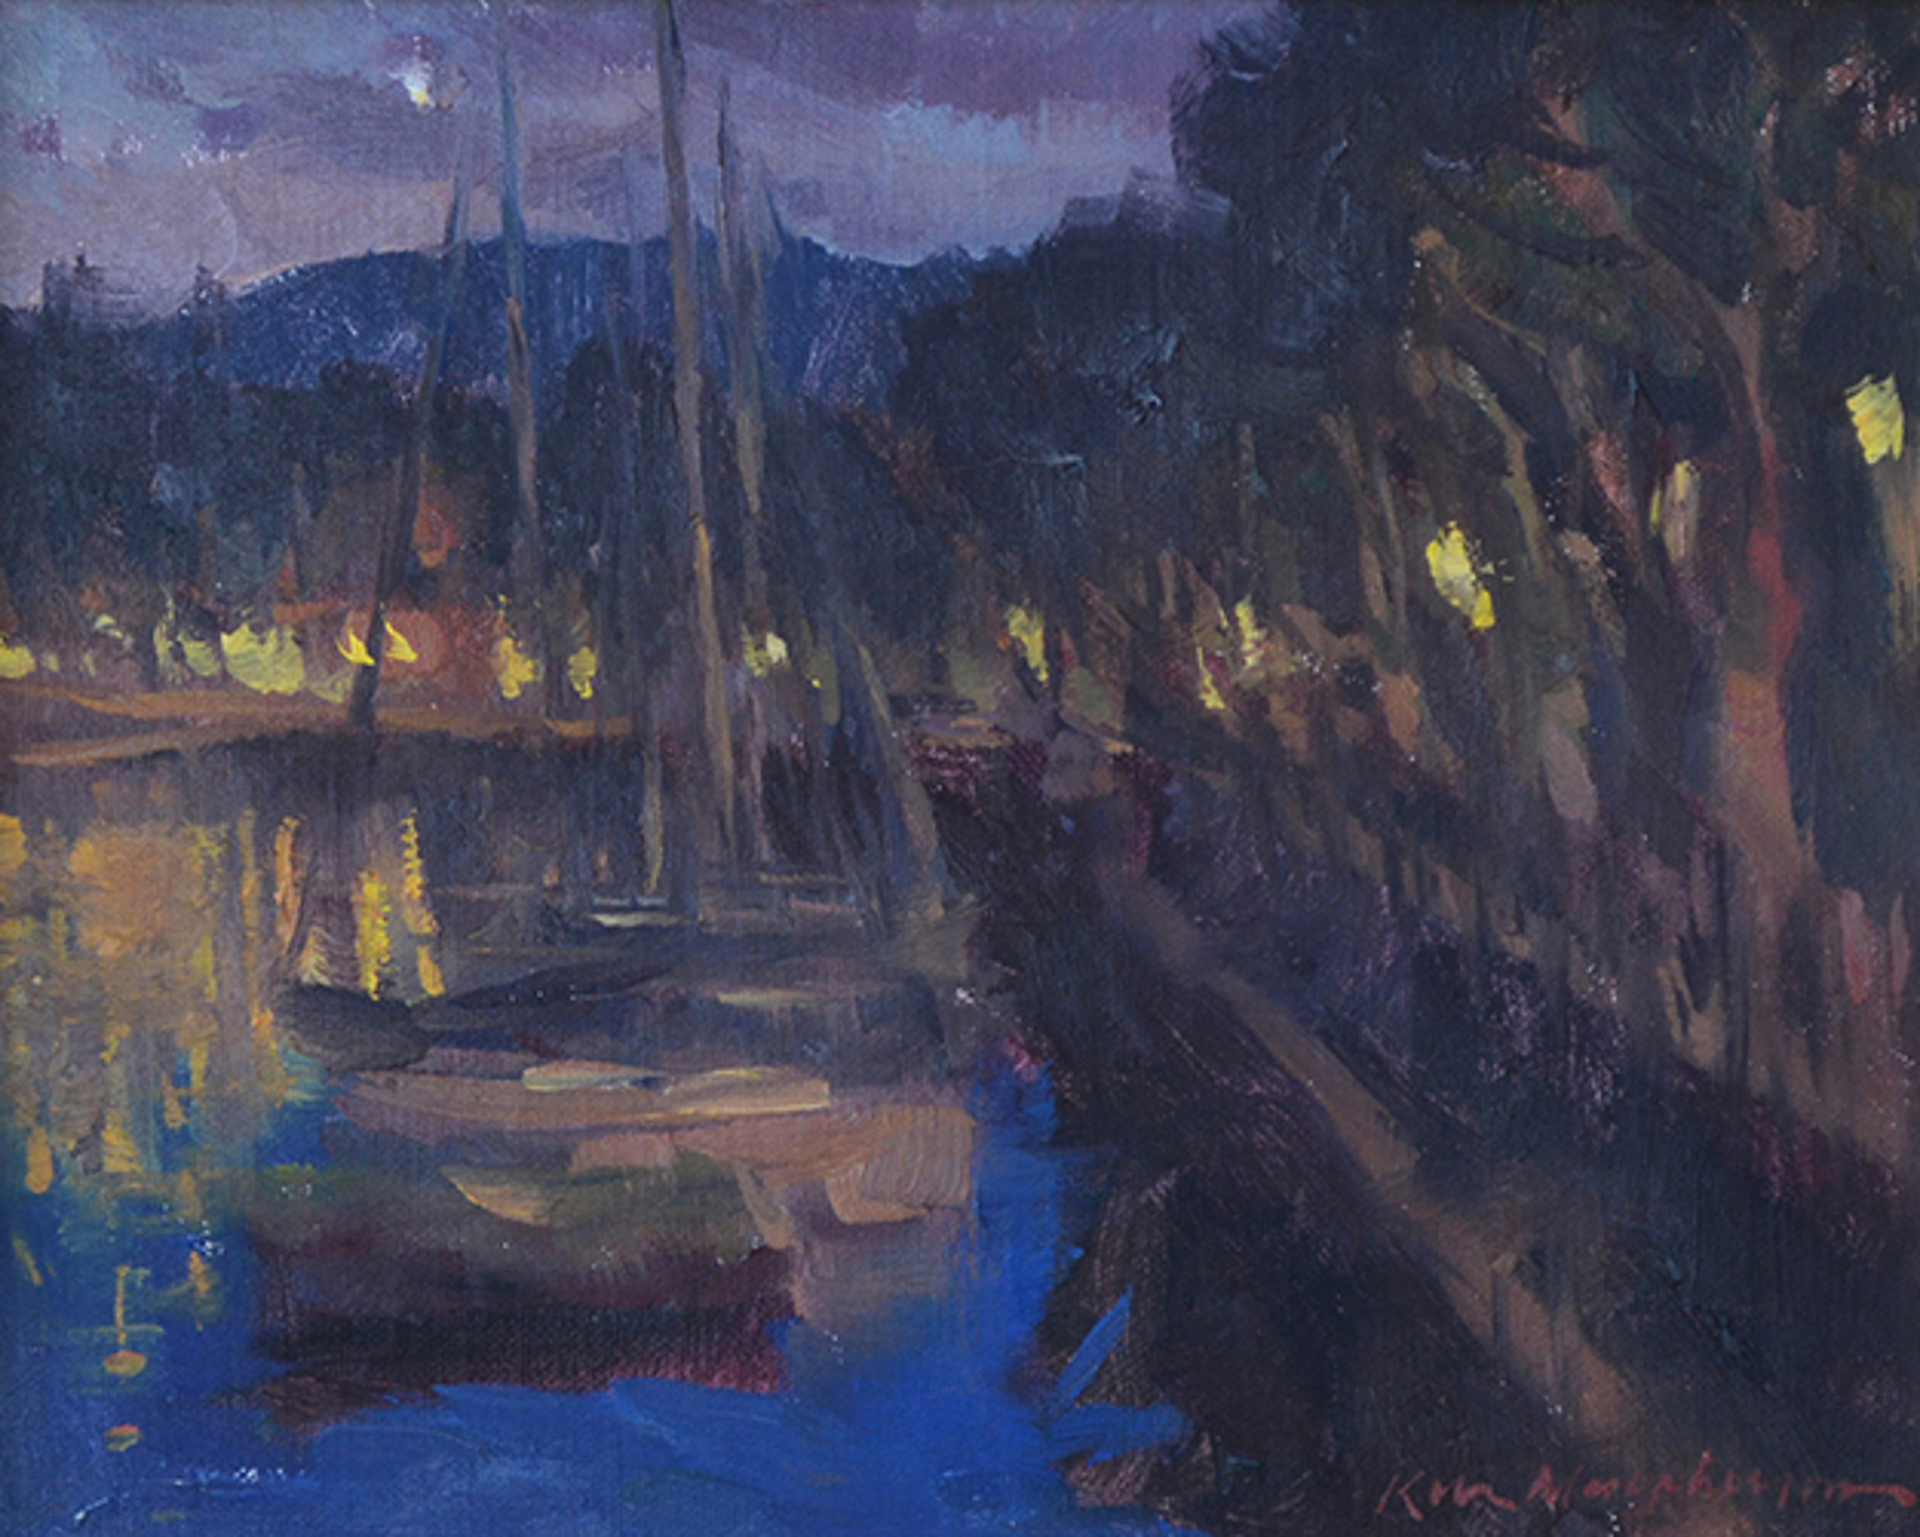 Evening Lights on Lake Como by Kevin Macpherson